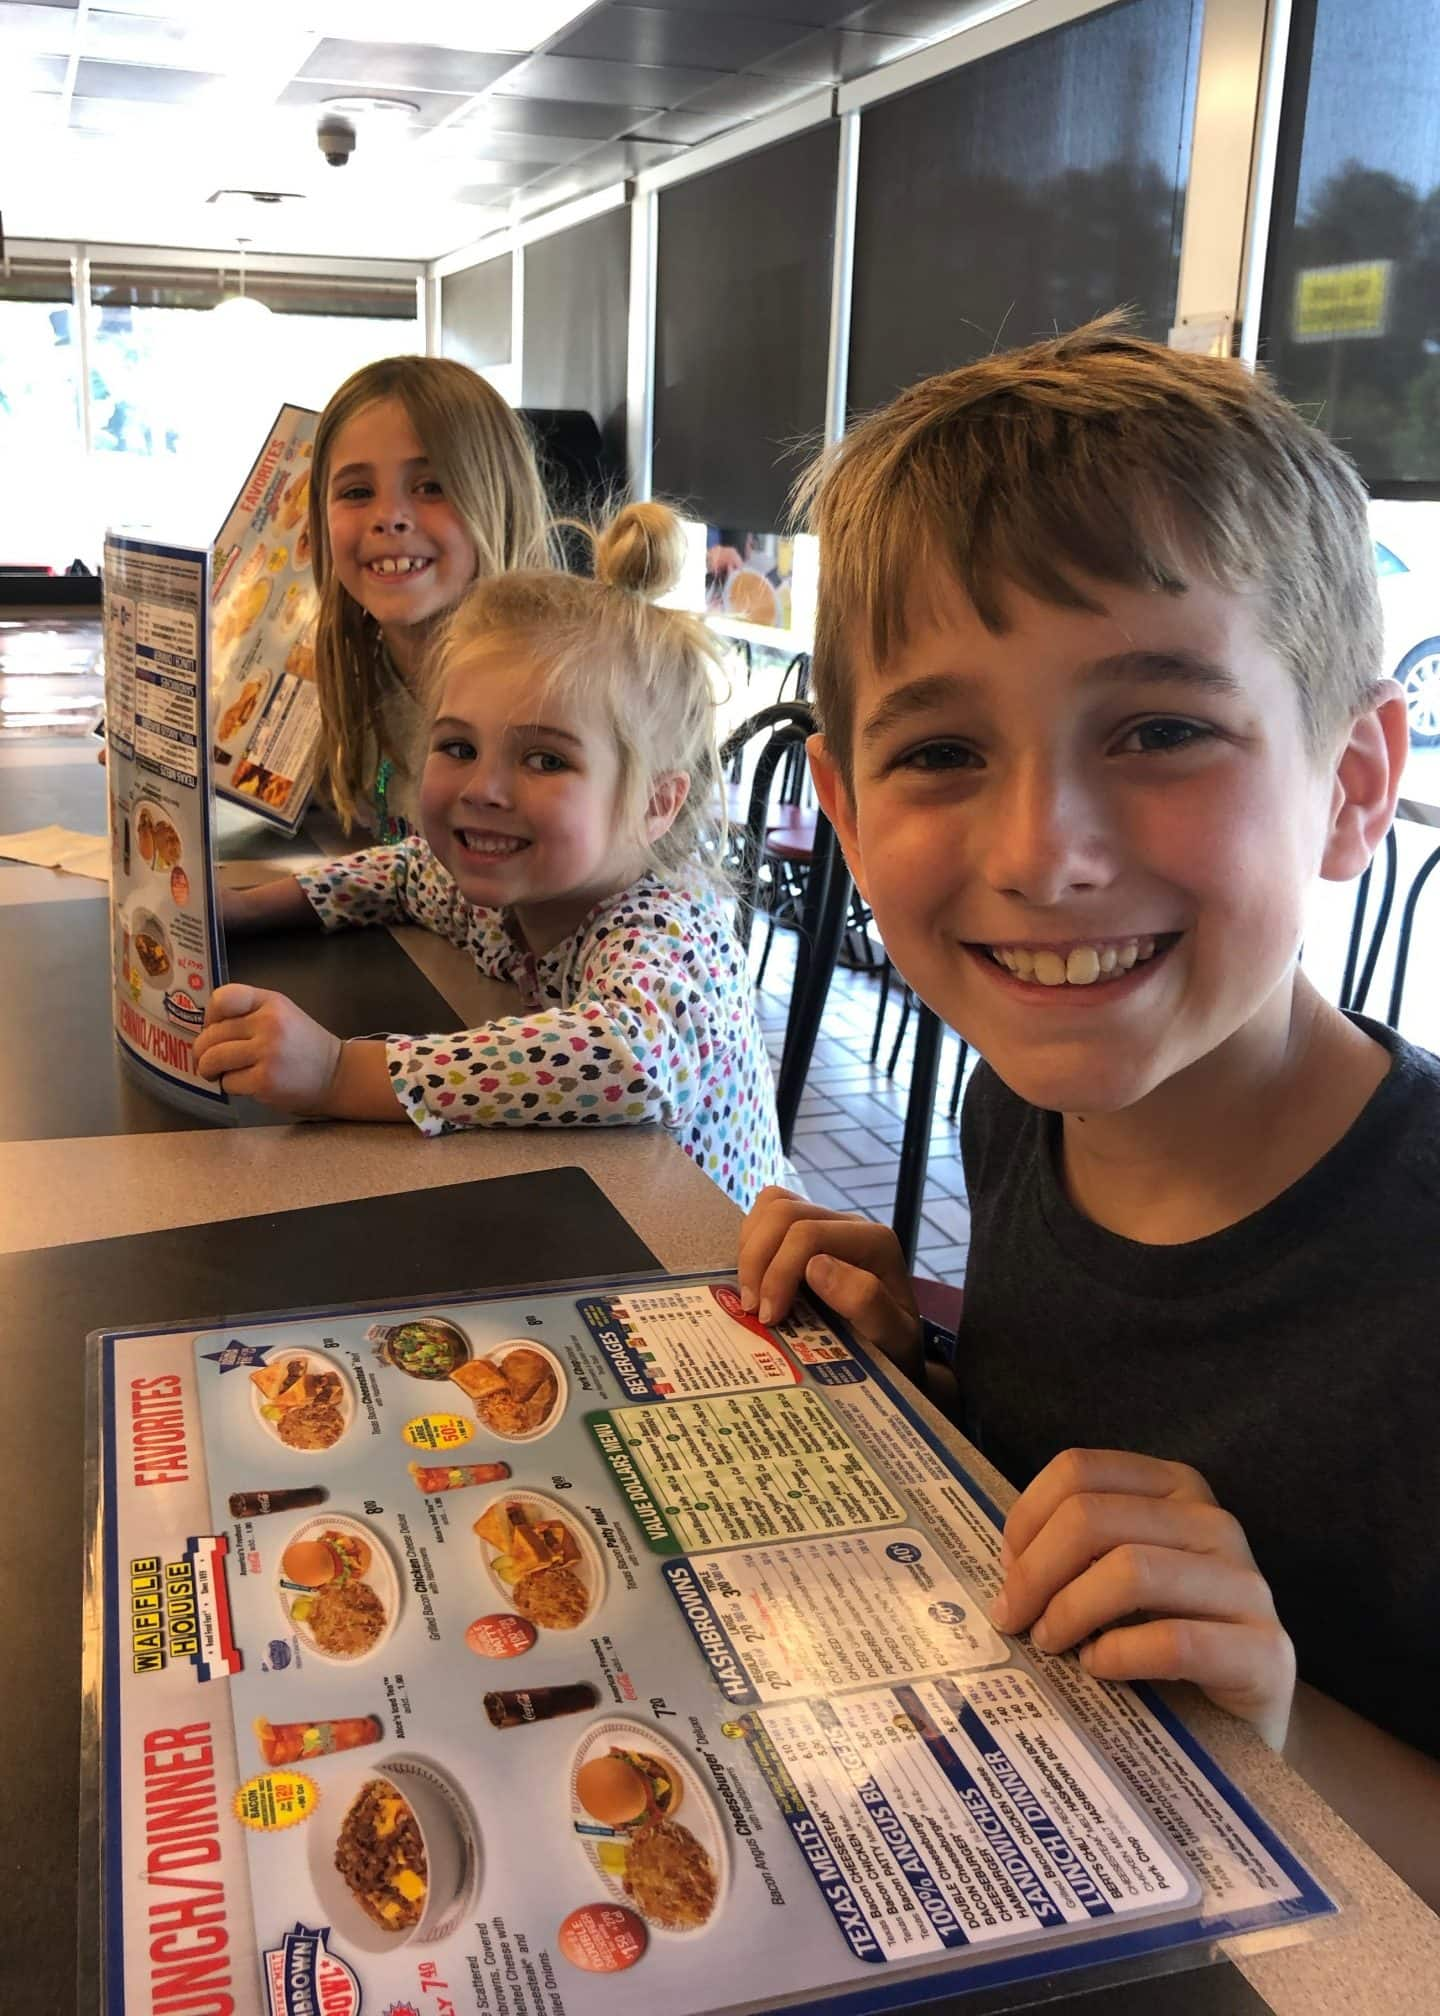 Waffle House family dinner